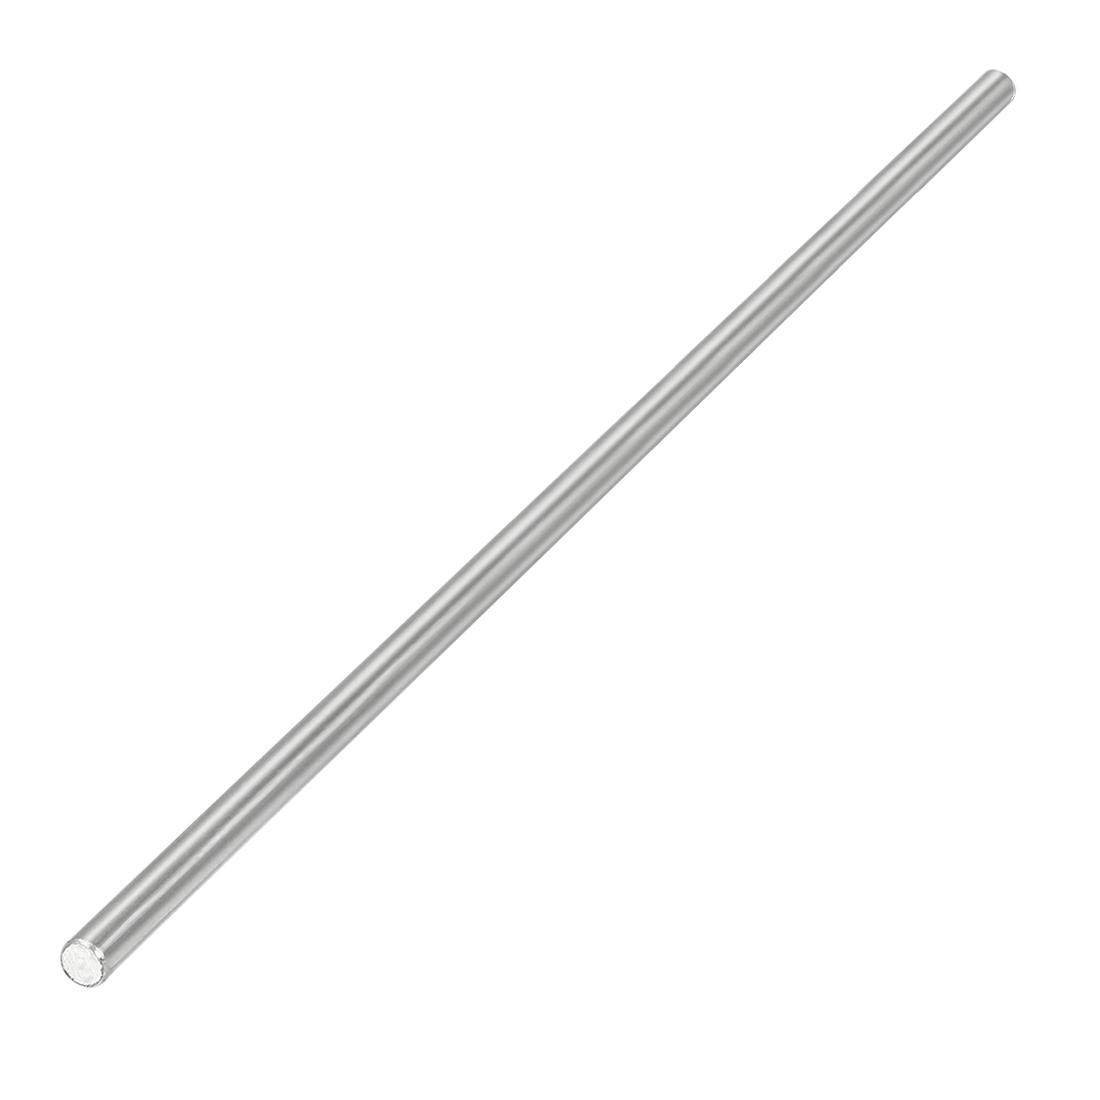 2.5mm Dia 130mm Length Stainless Steel Solid Round Shaft Rod for RC Model Toy